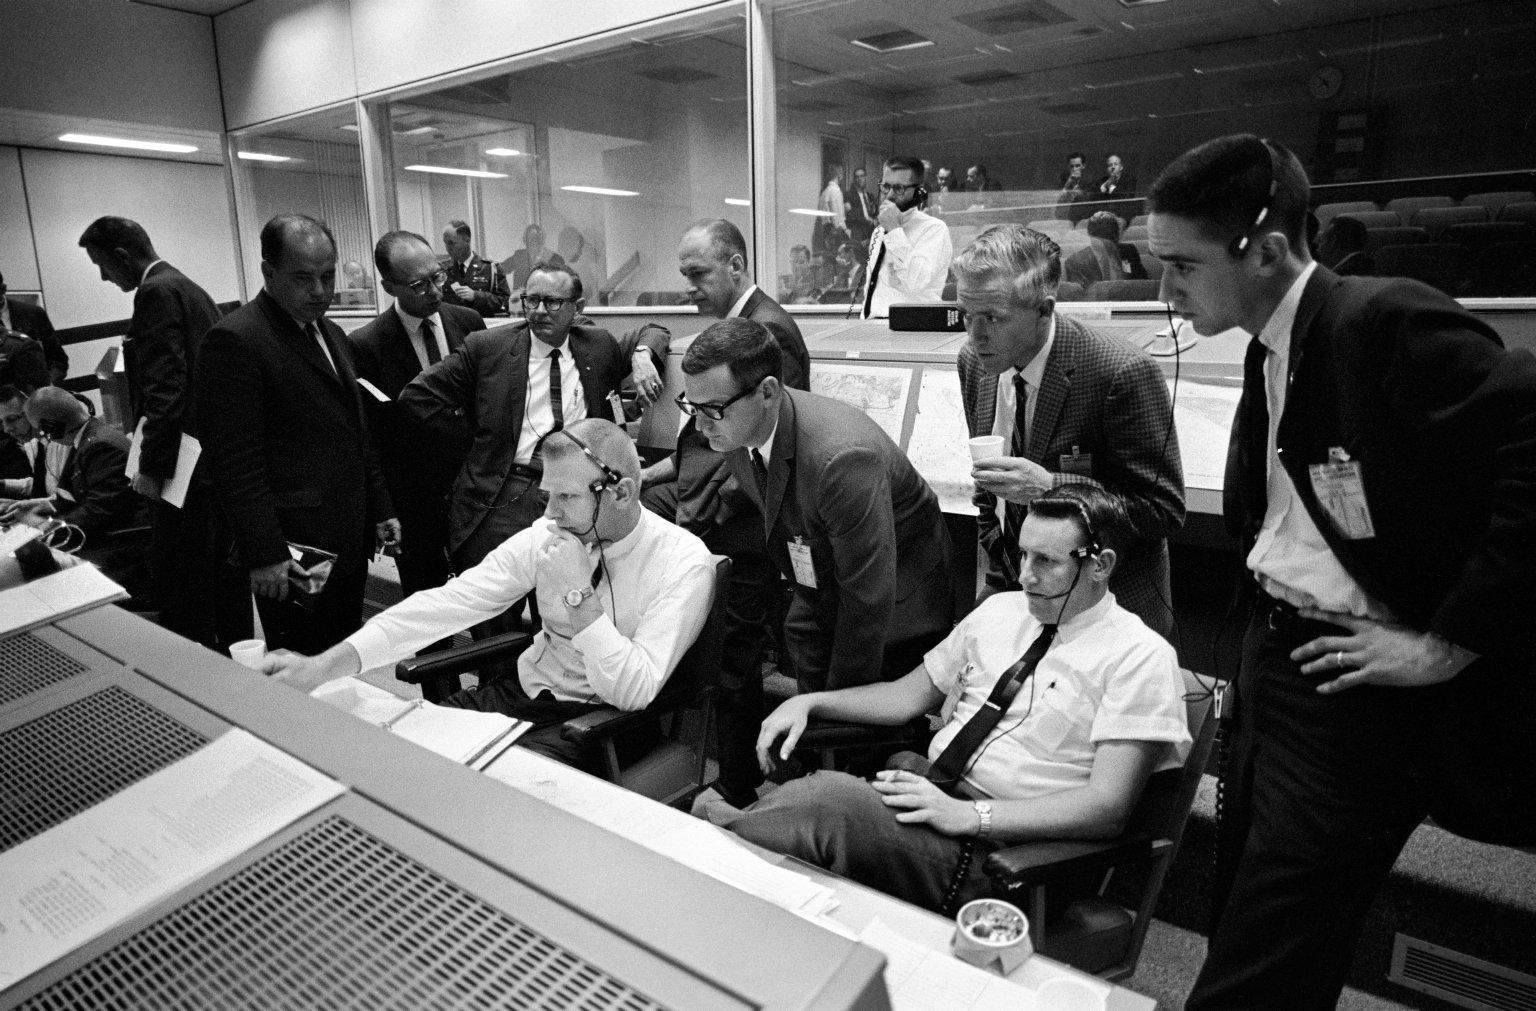 Personnel in Mission Control discuss the postponement of the Gemini 9 mission